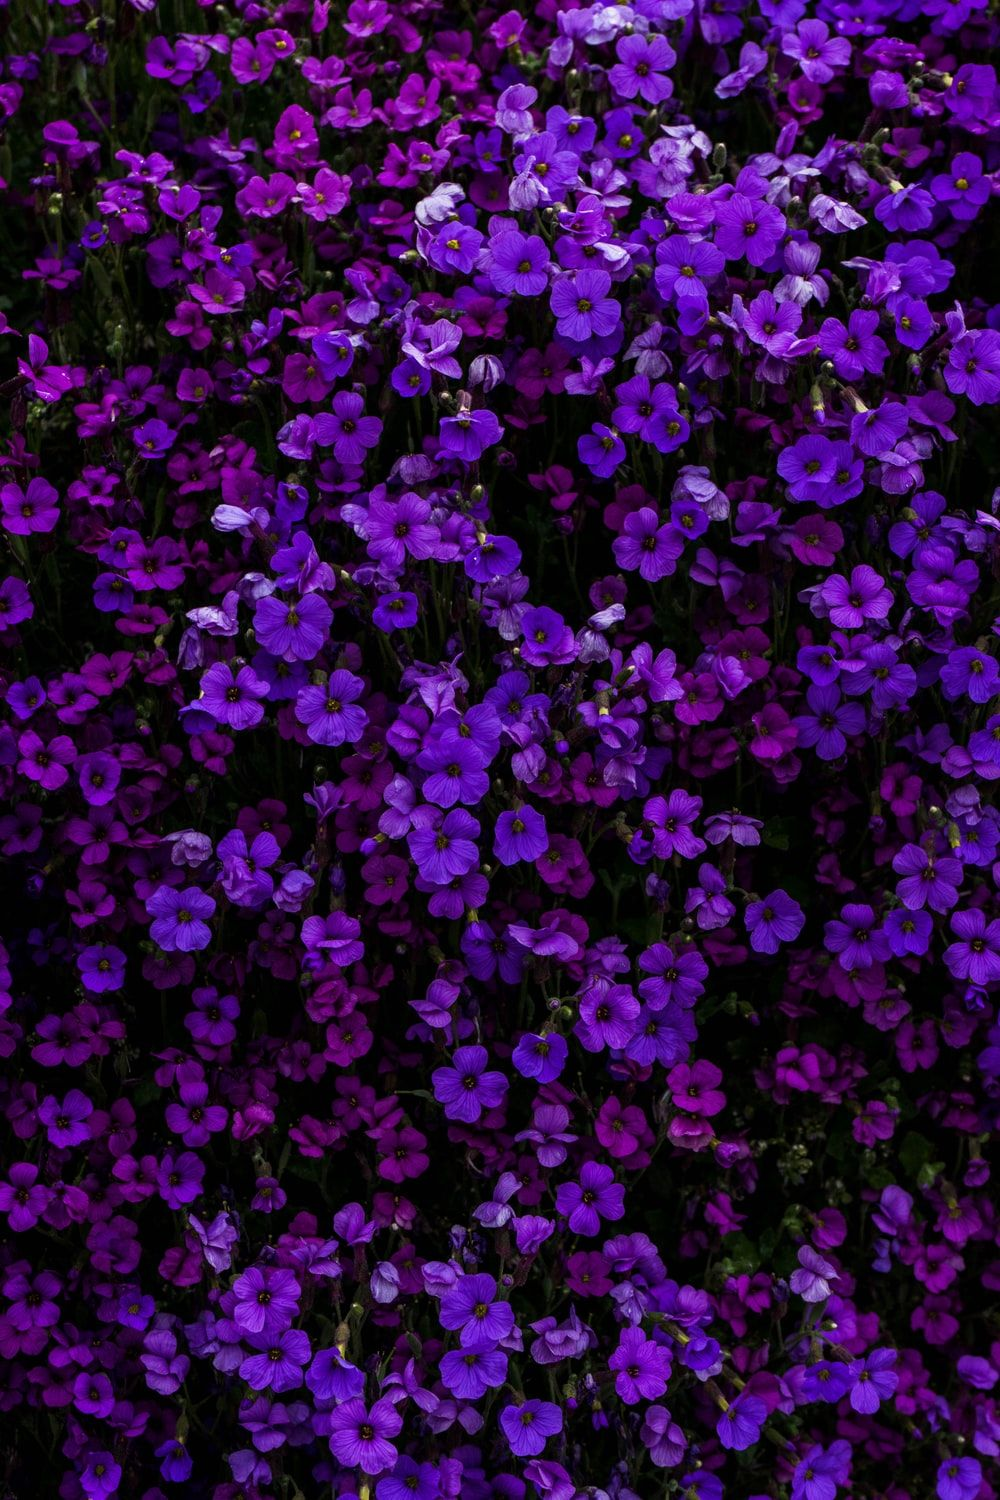 Purple Wallpapers: Free HD Download [500+ HQ]